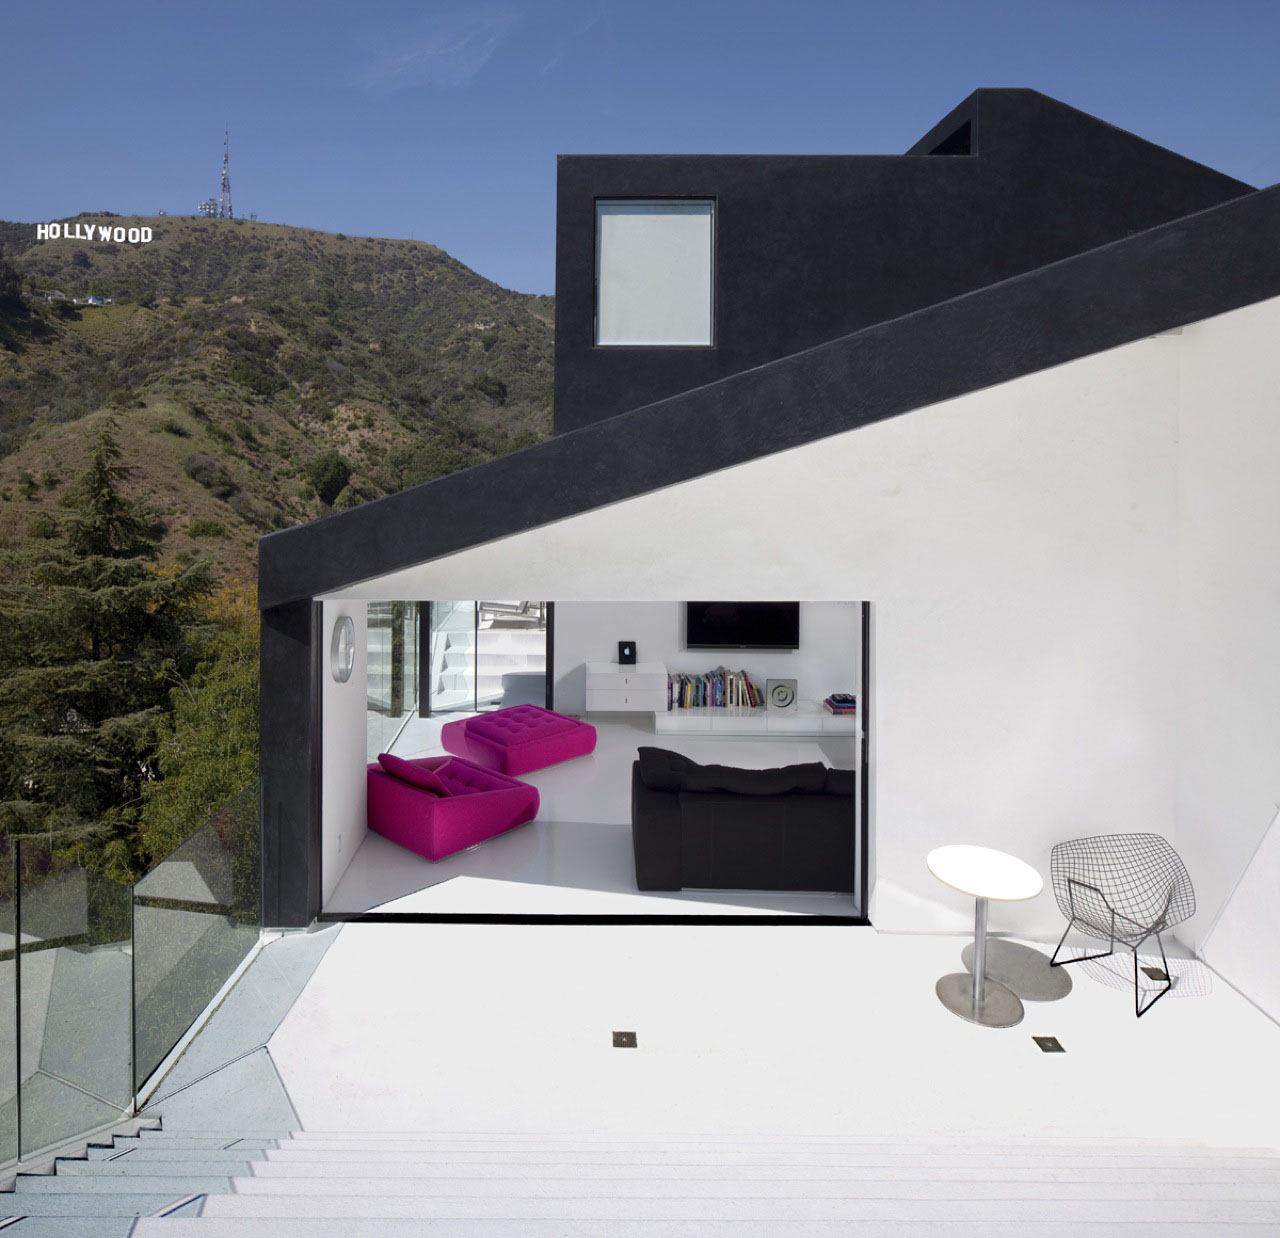 Abstract minimalist house in hollywood hills idesignarch for Minimalist house california